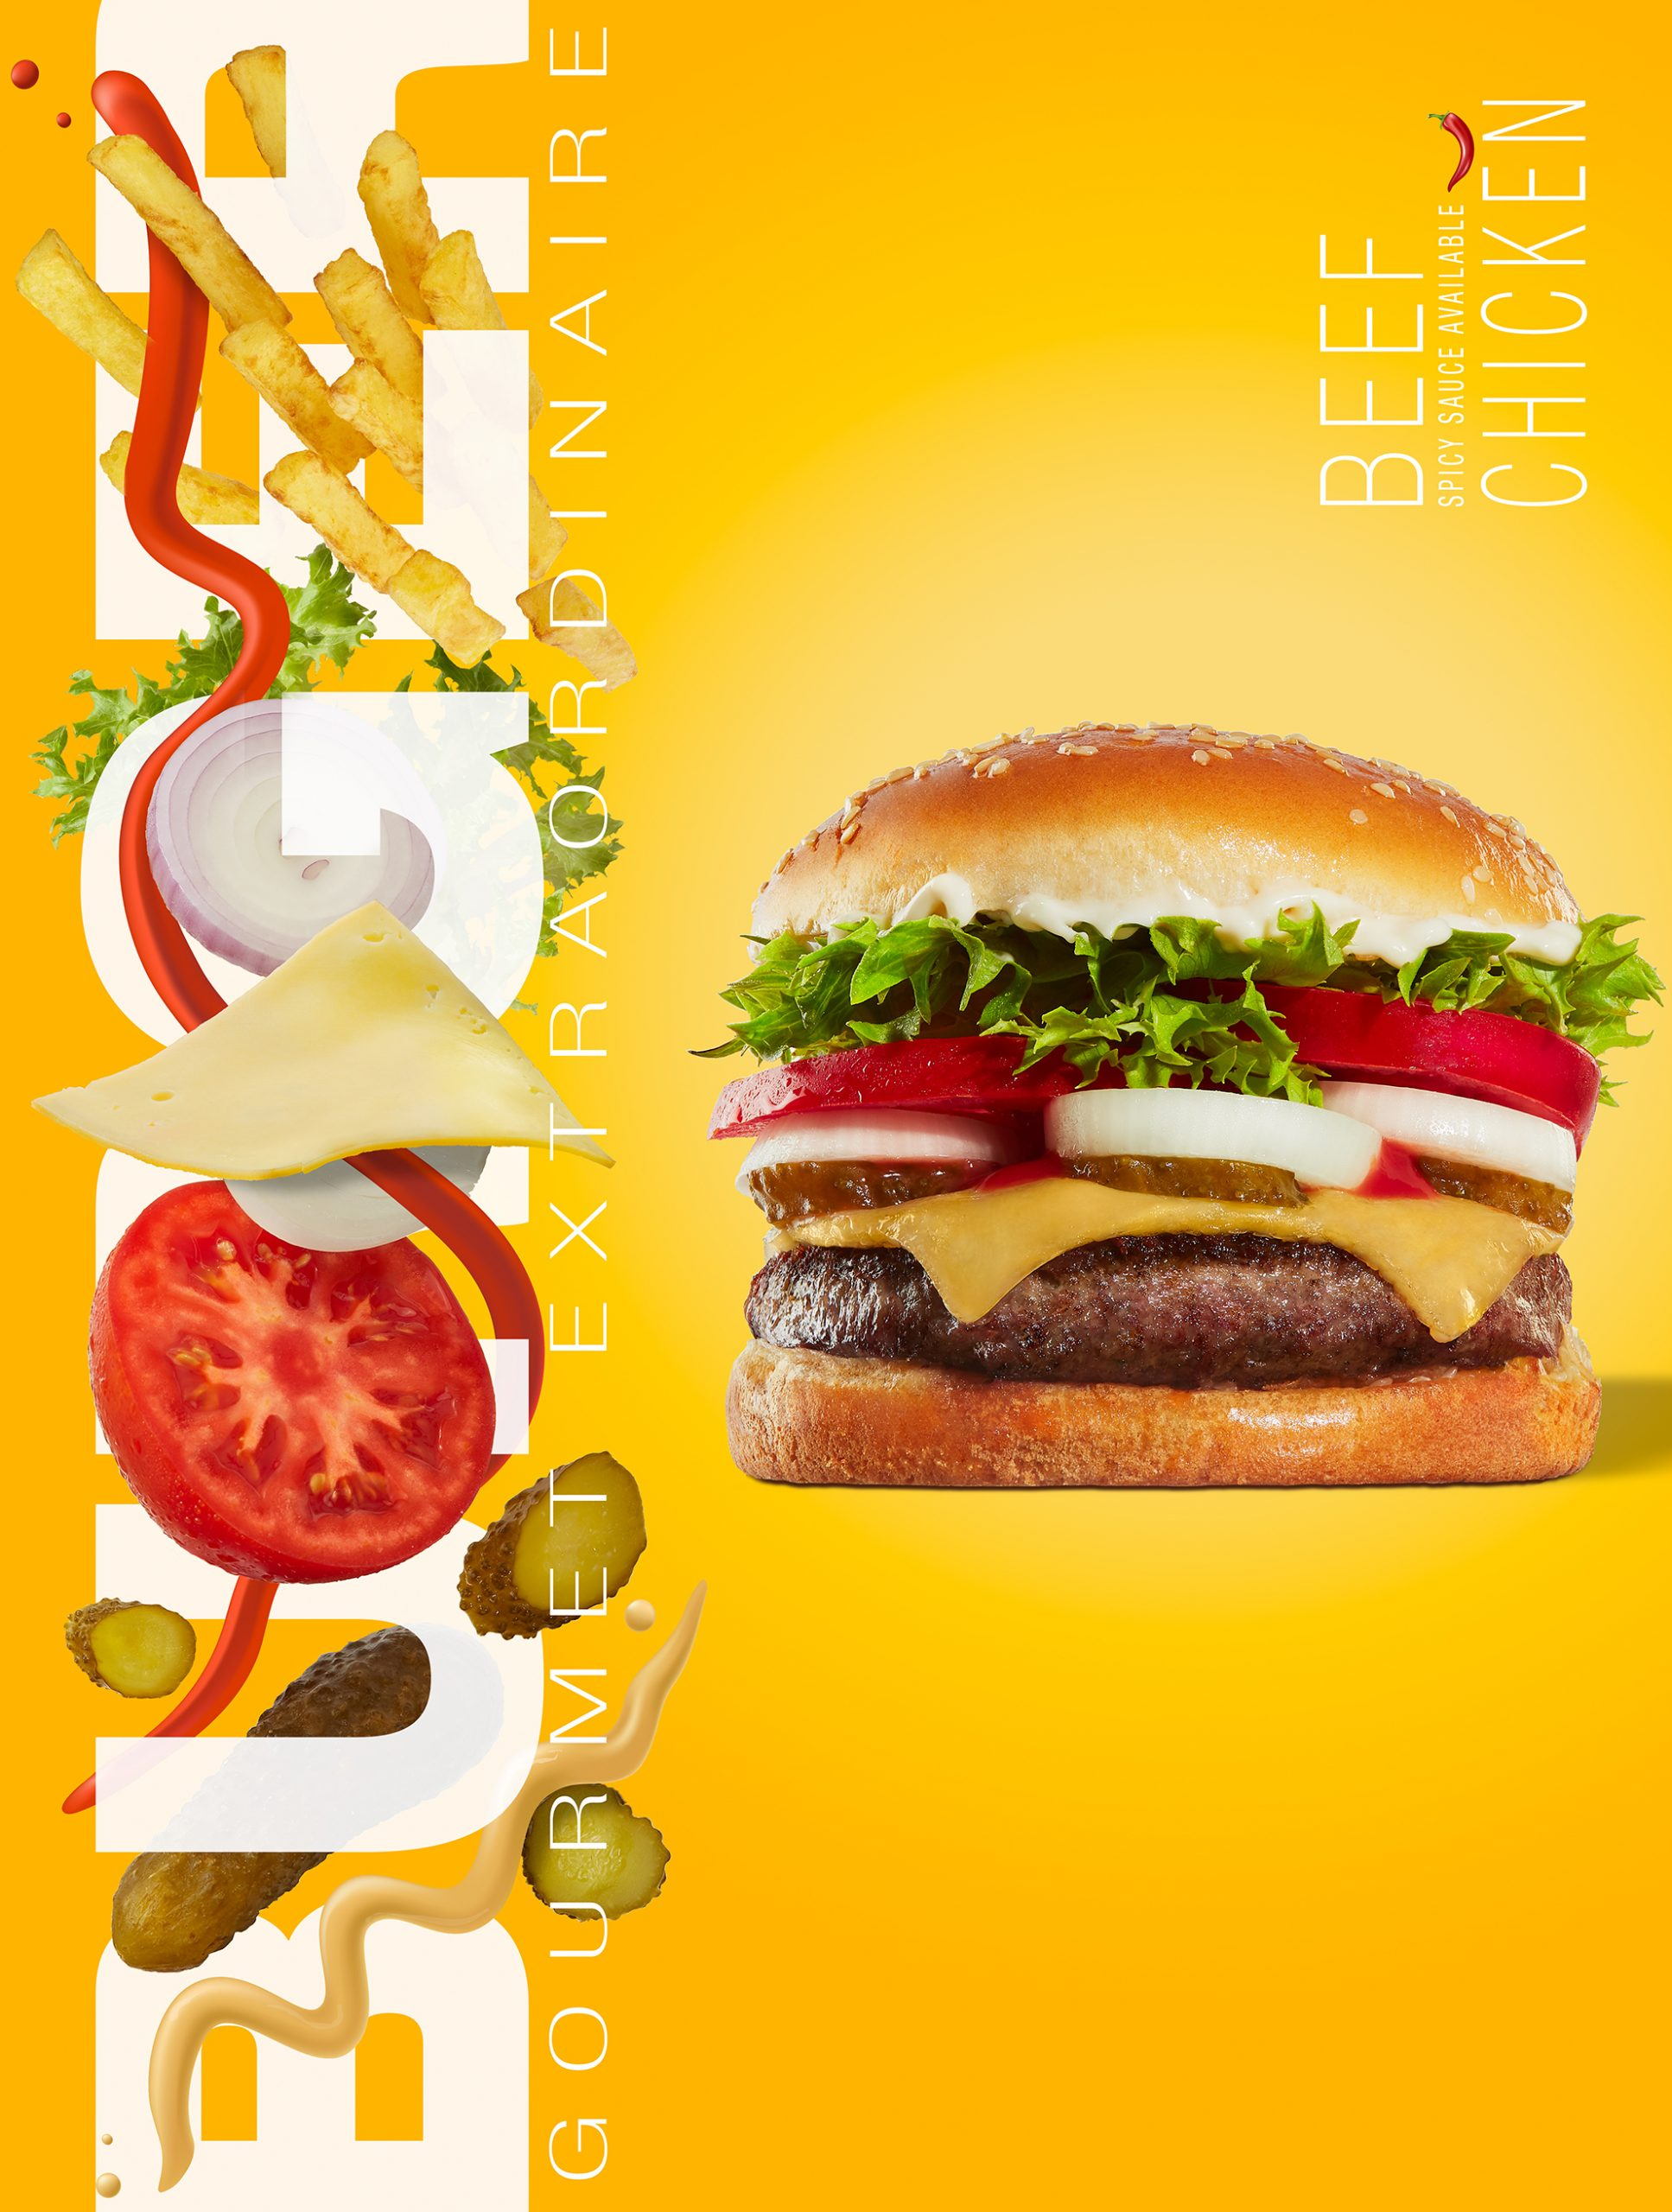 food-and-drinks-commercial-advertorial-stiill-life-photo-of-a-burger